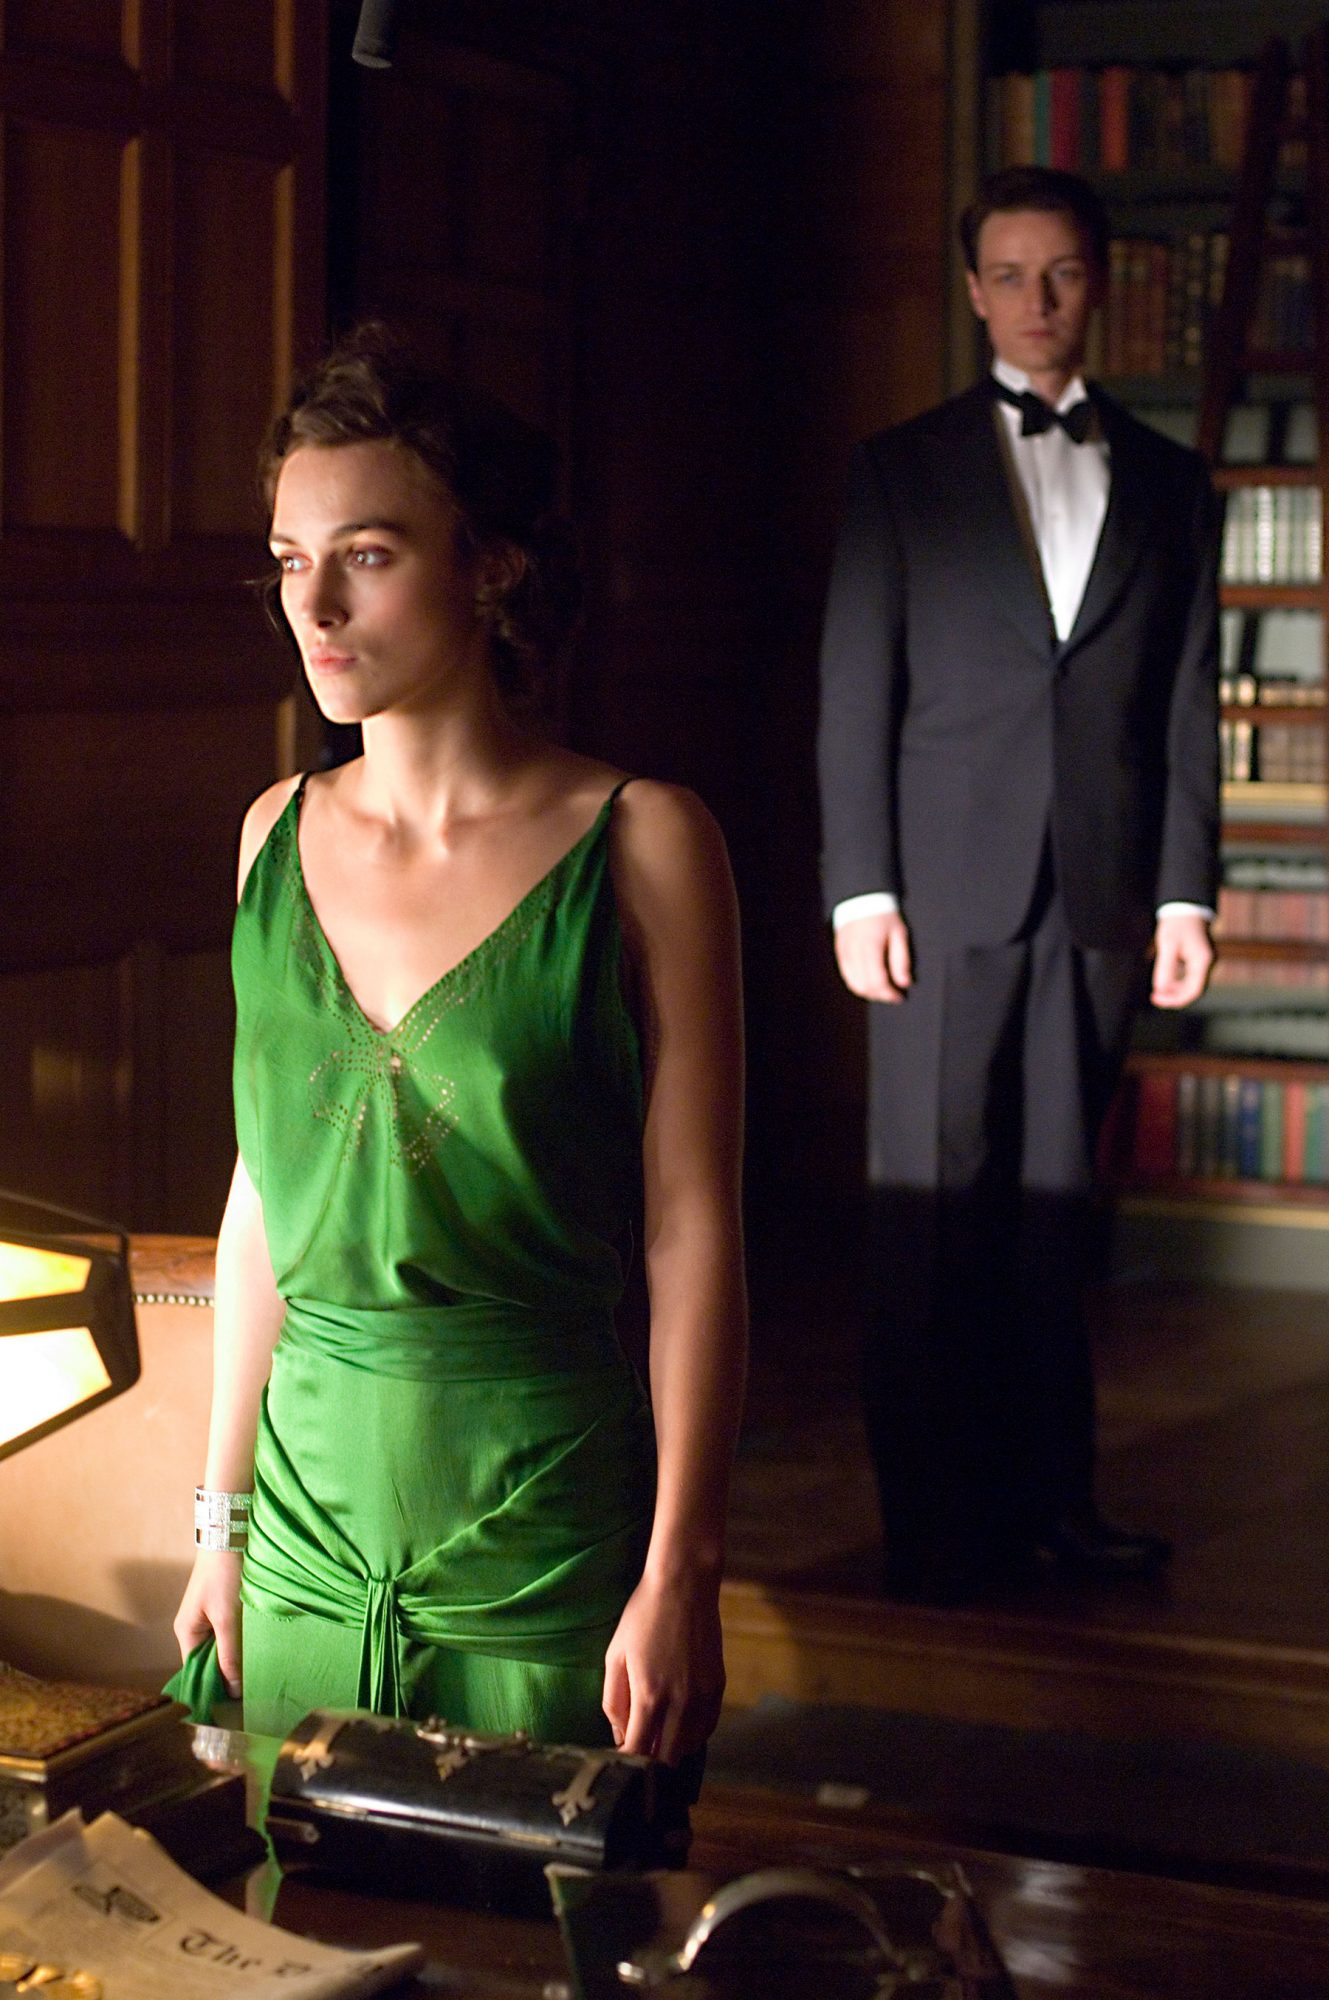 Atonement: Caught in the Library [Favorite Scenes]